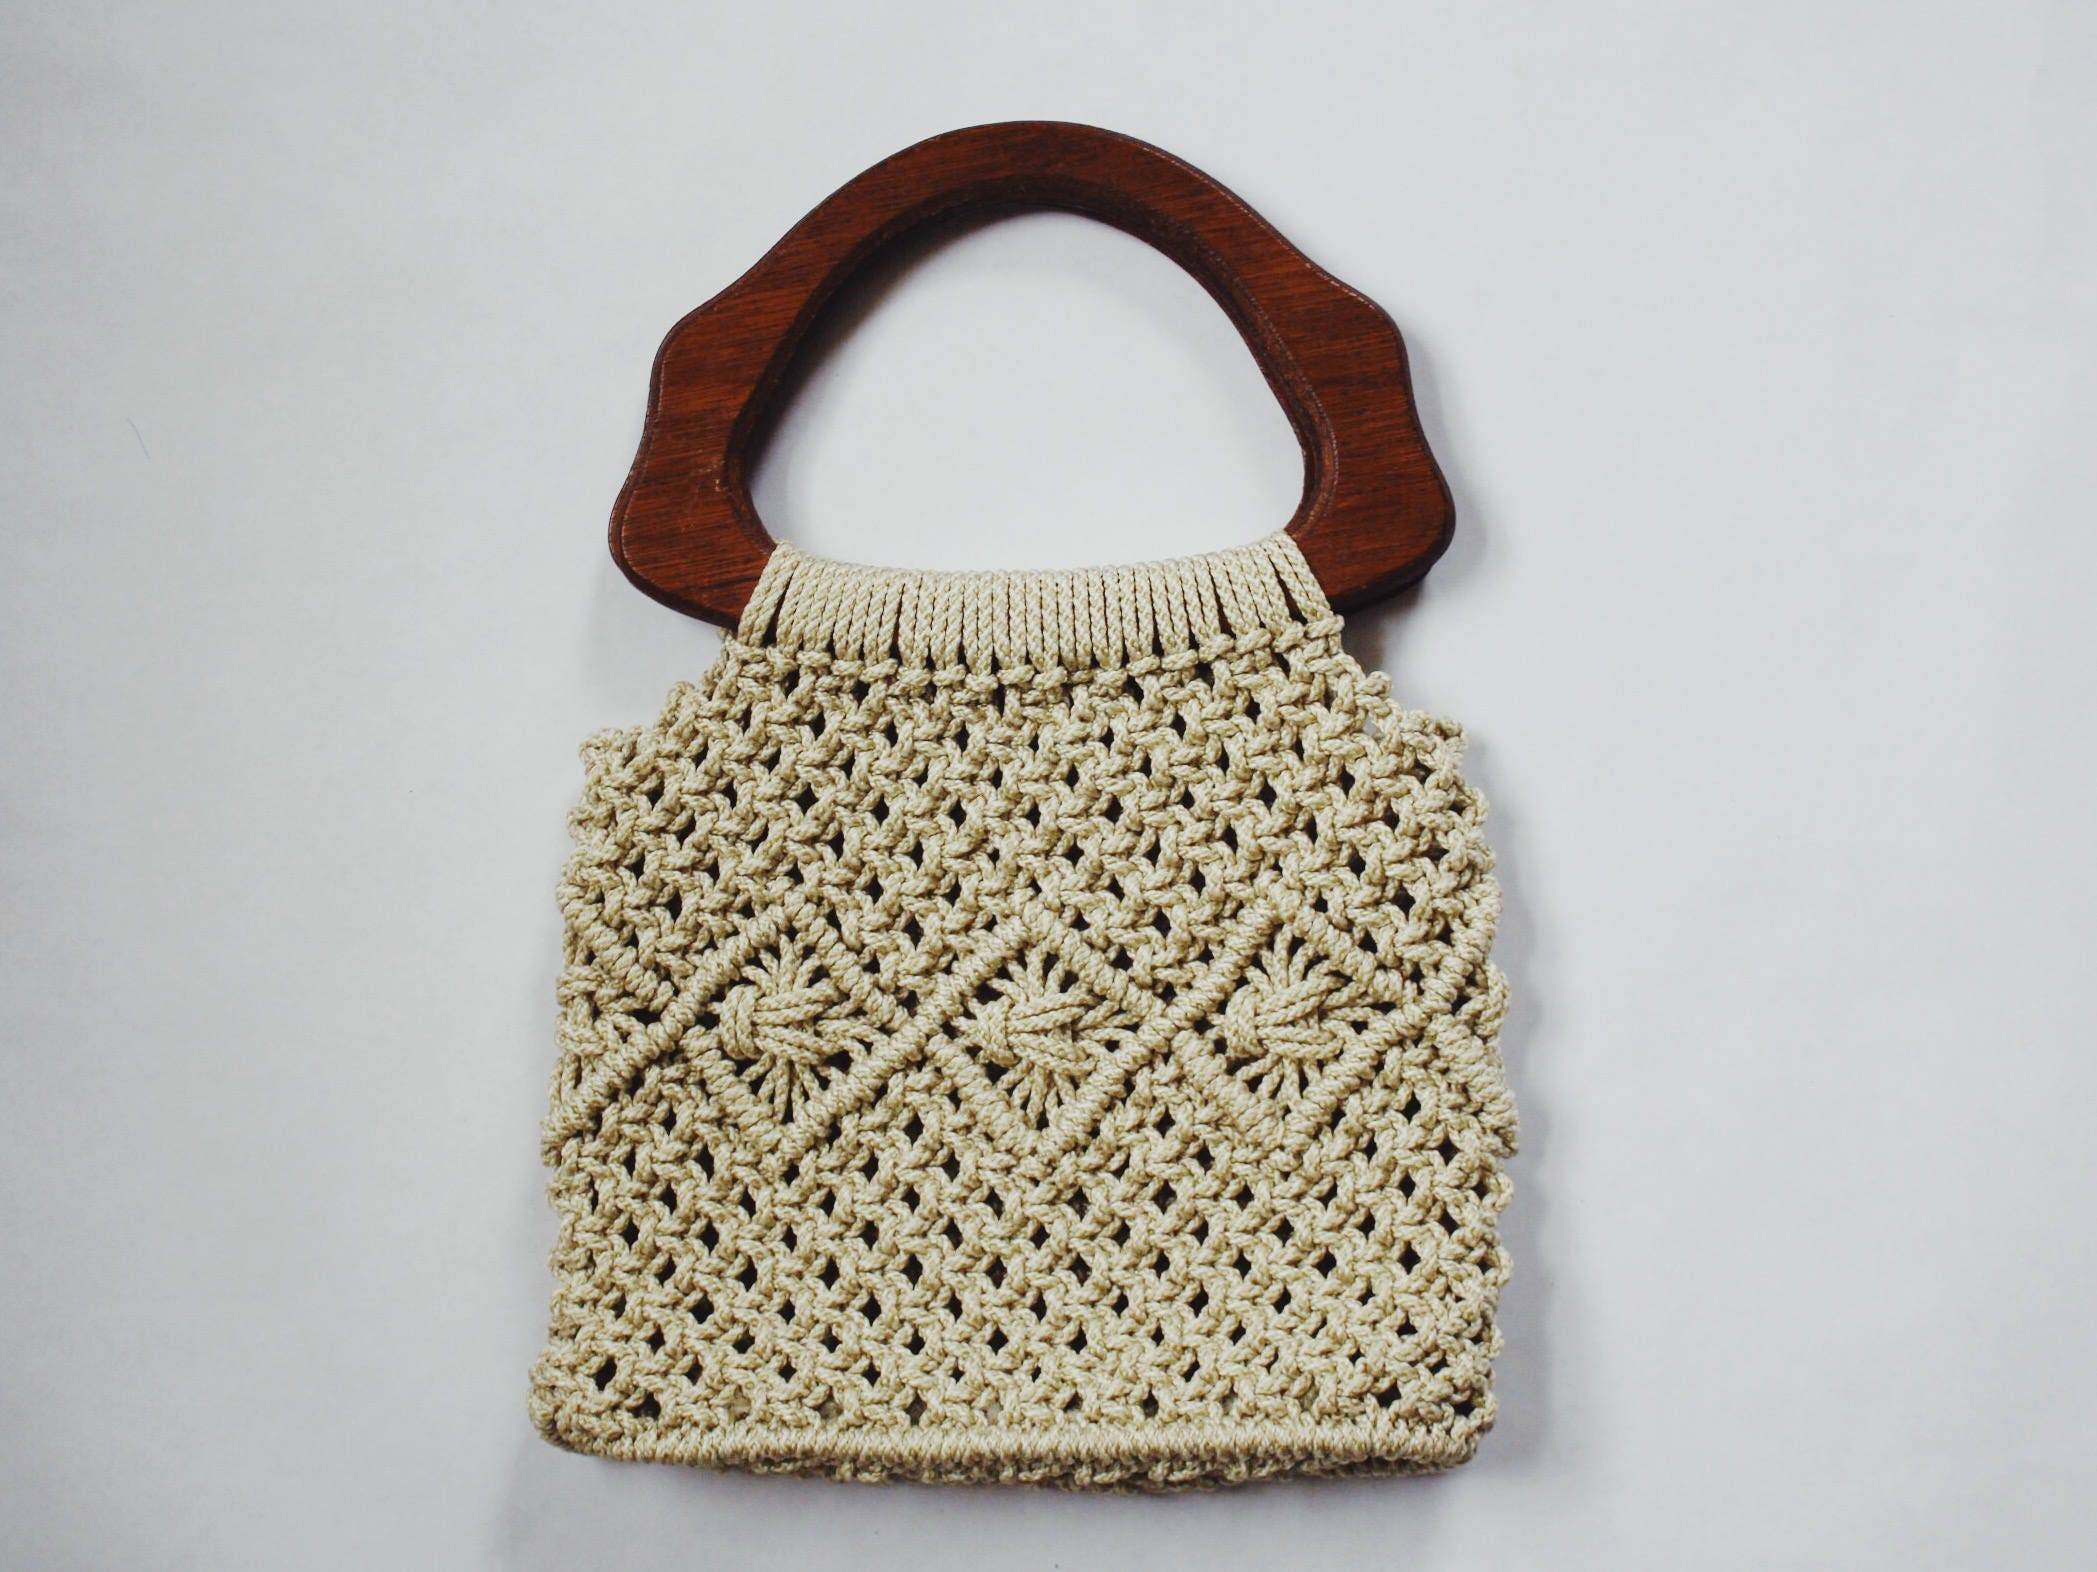 LOTTY BAG | vintage macrame bag | woven purse | crochet bag ...